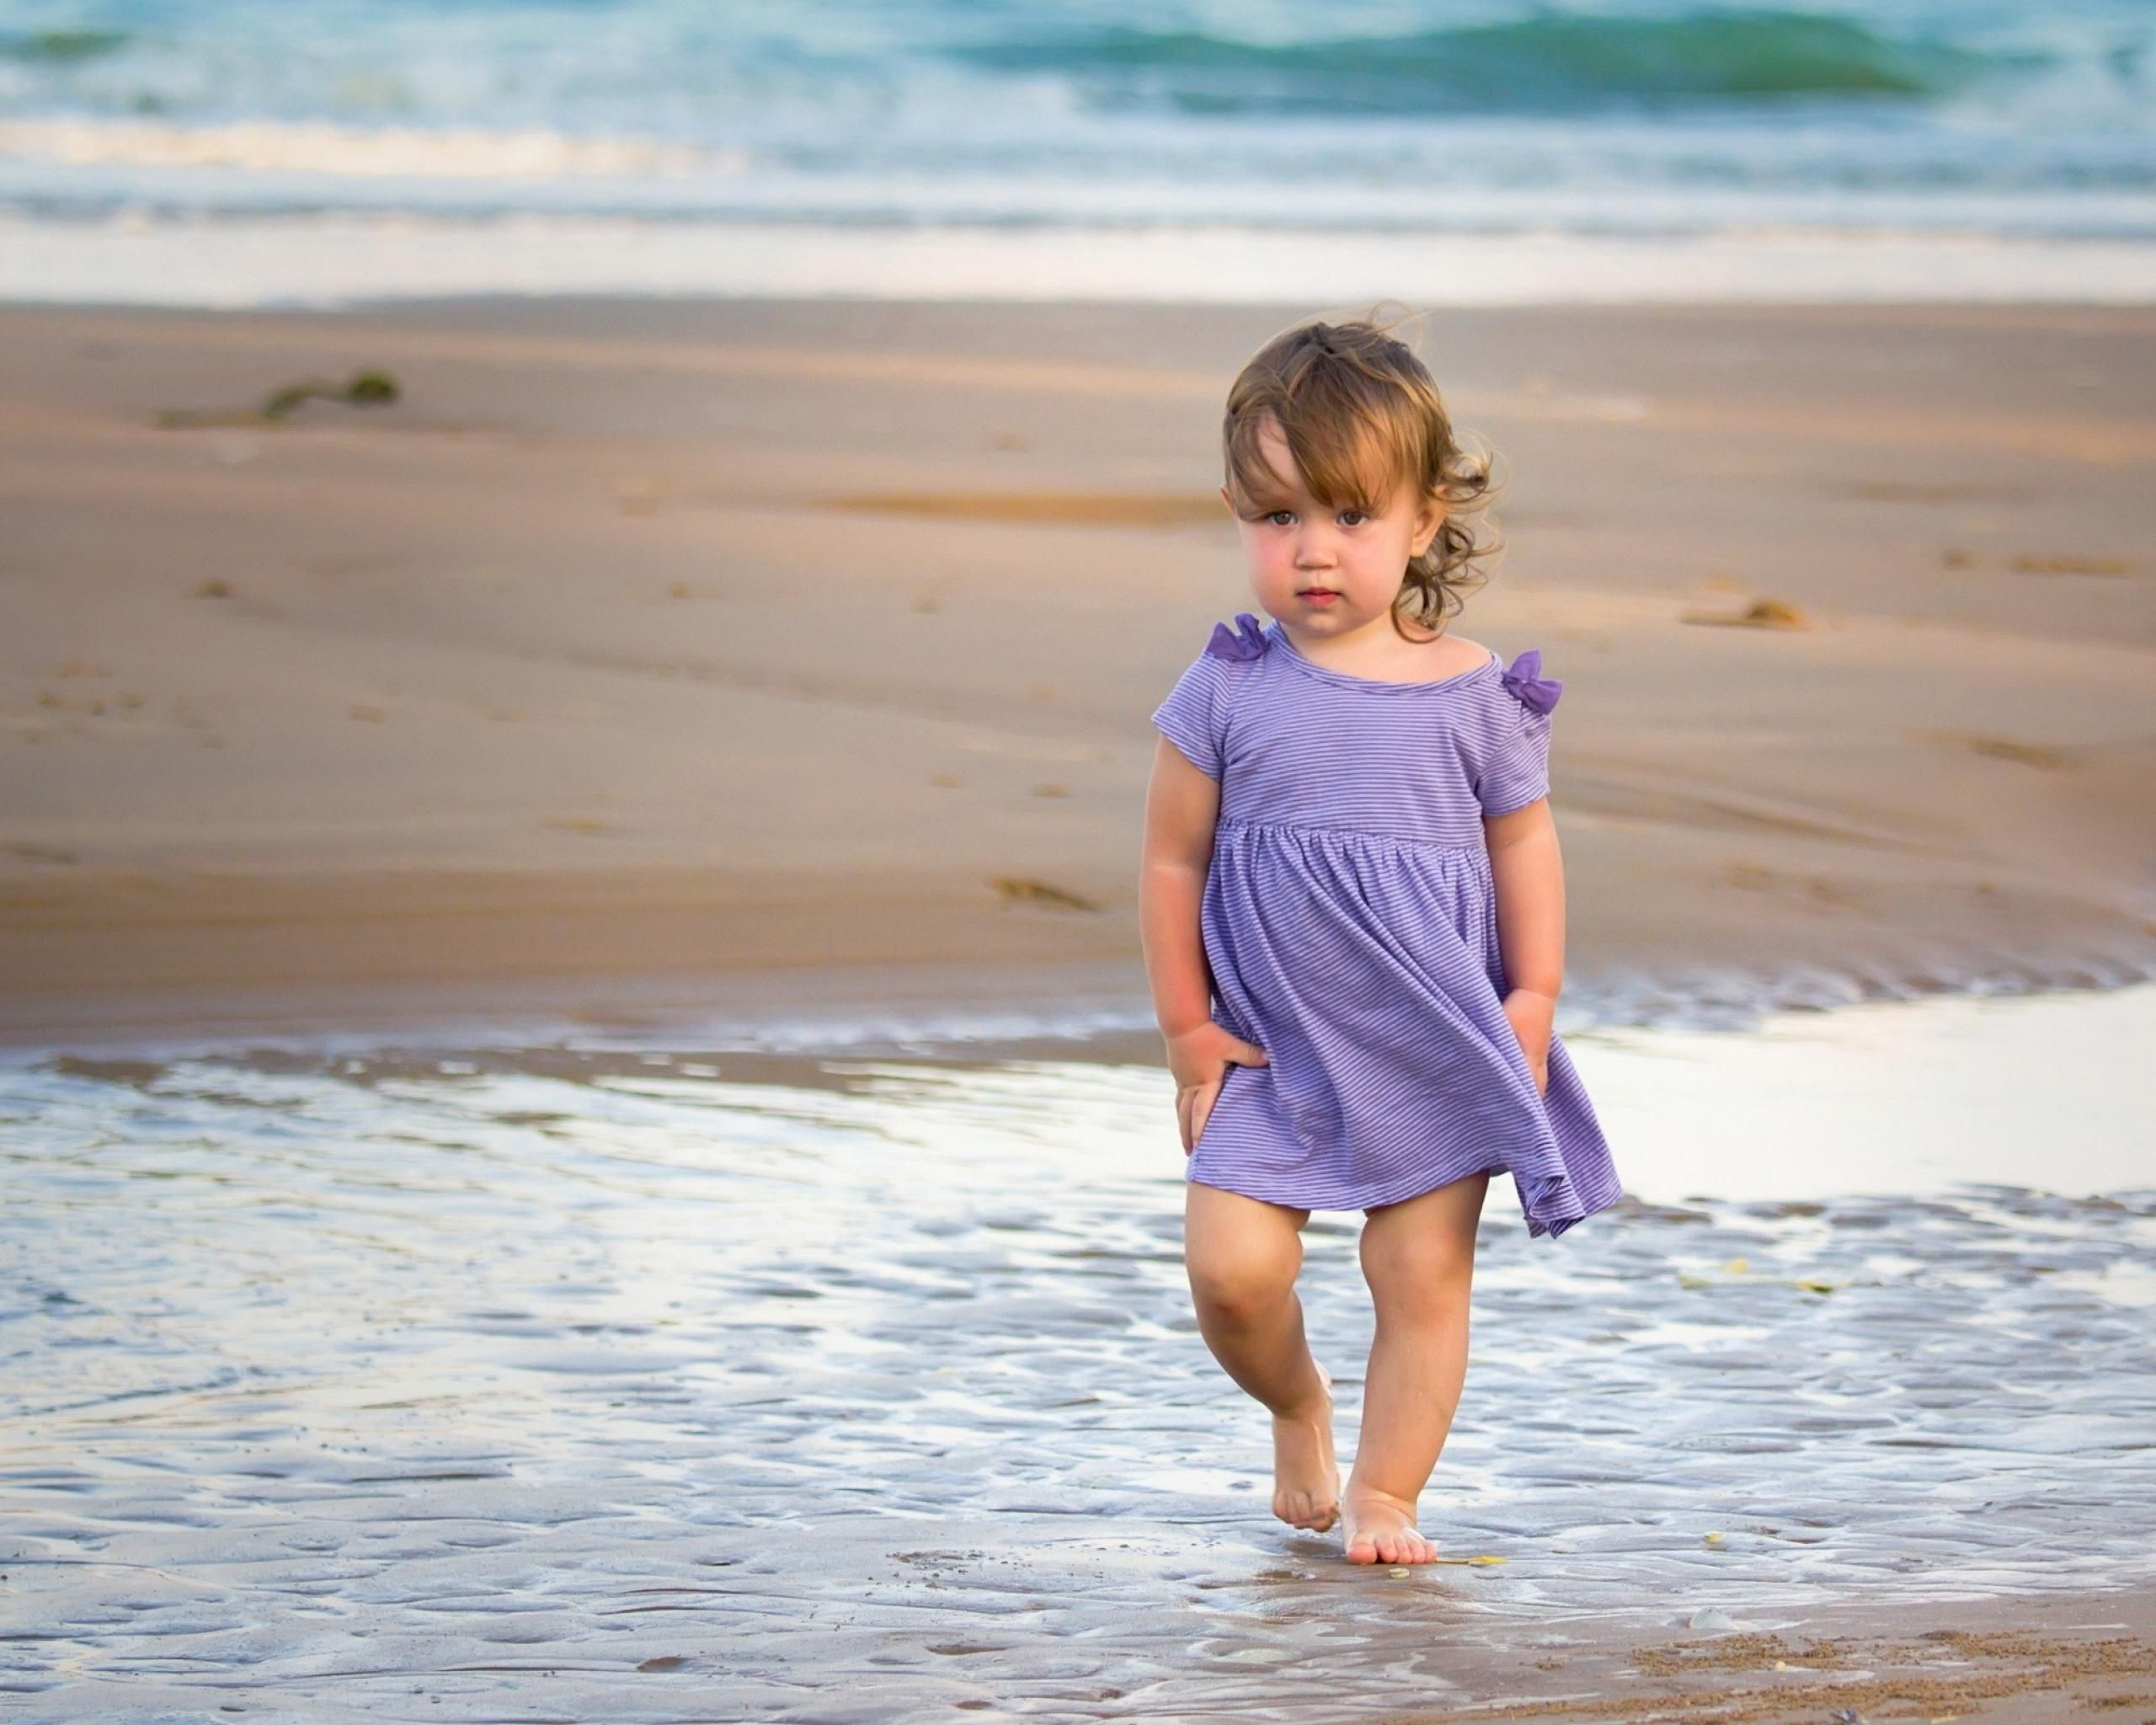 Free Images Of Children Free Download Wallpapers Kids Nature Beach